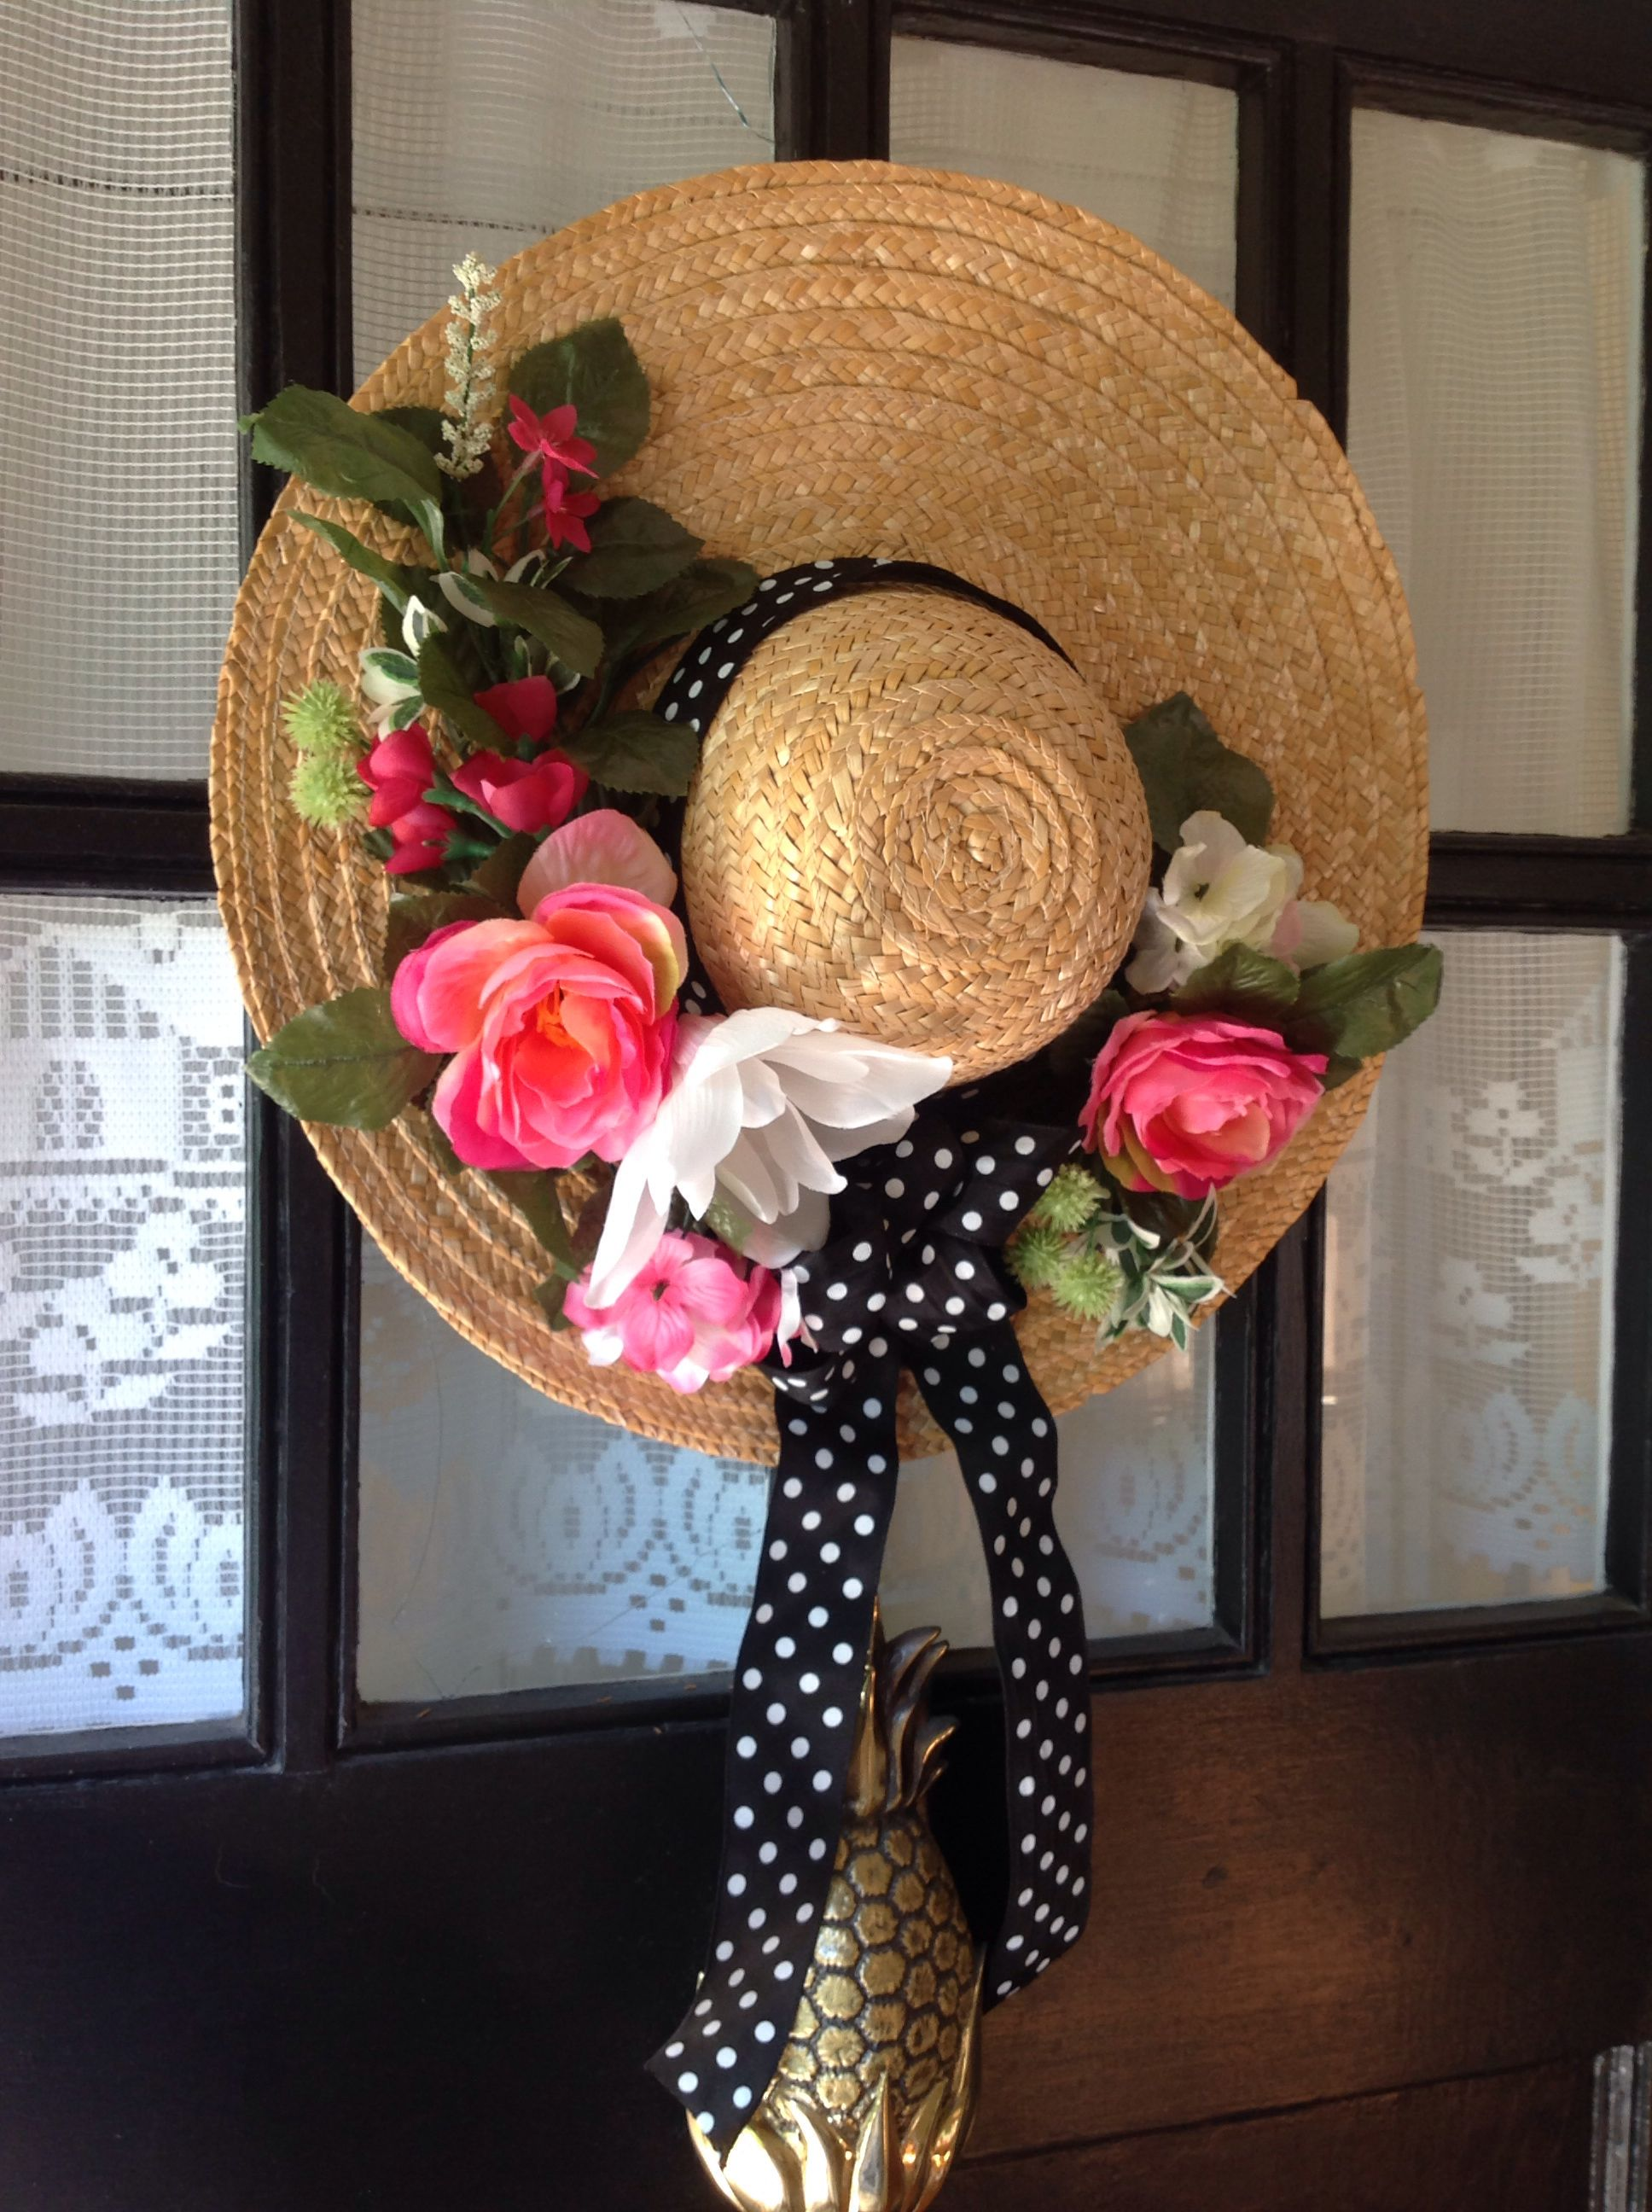 I decorated this straw hat for my